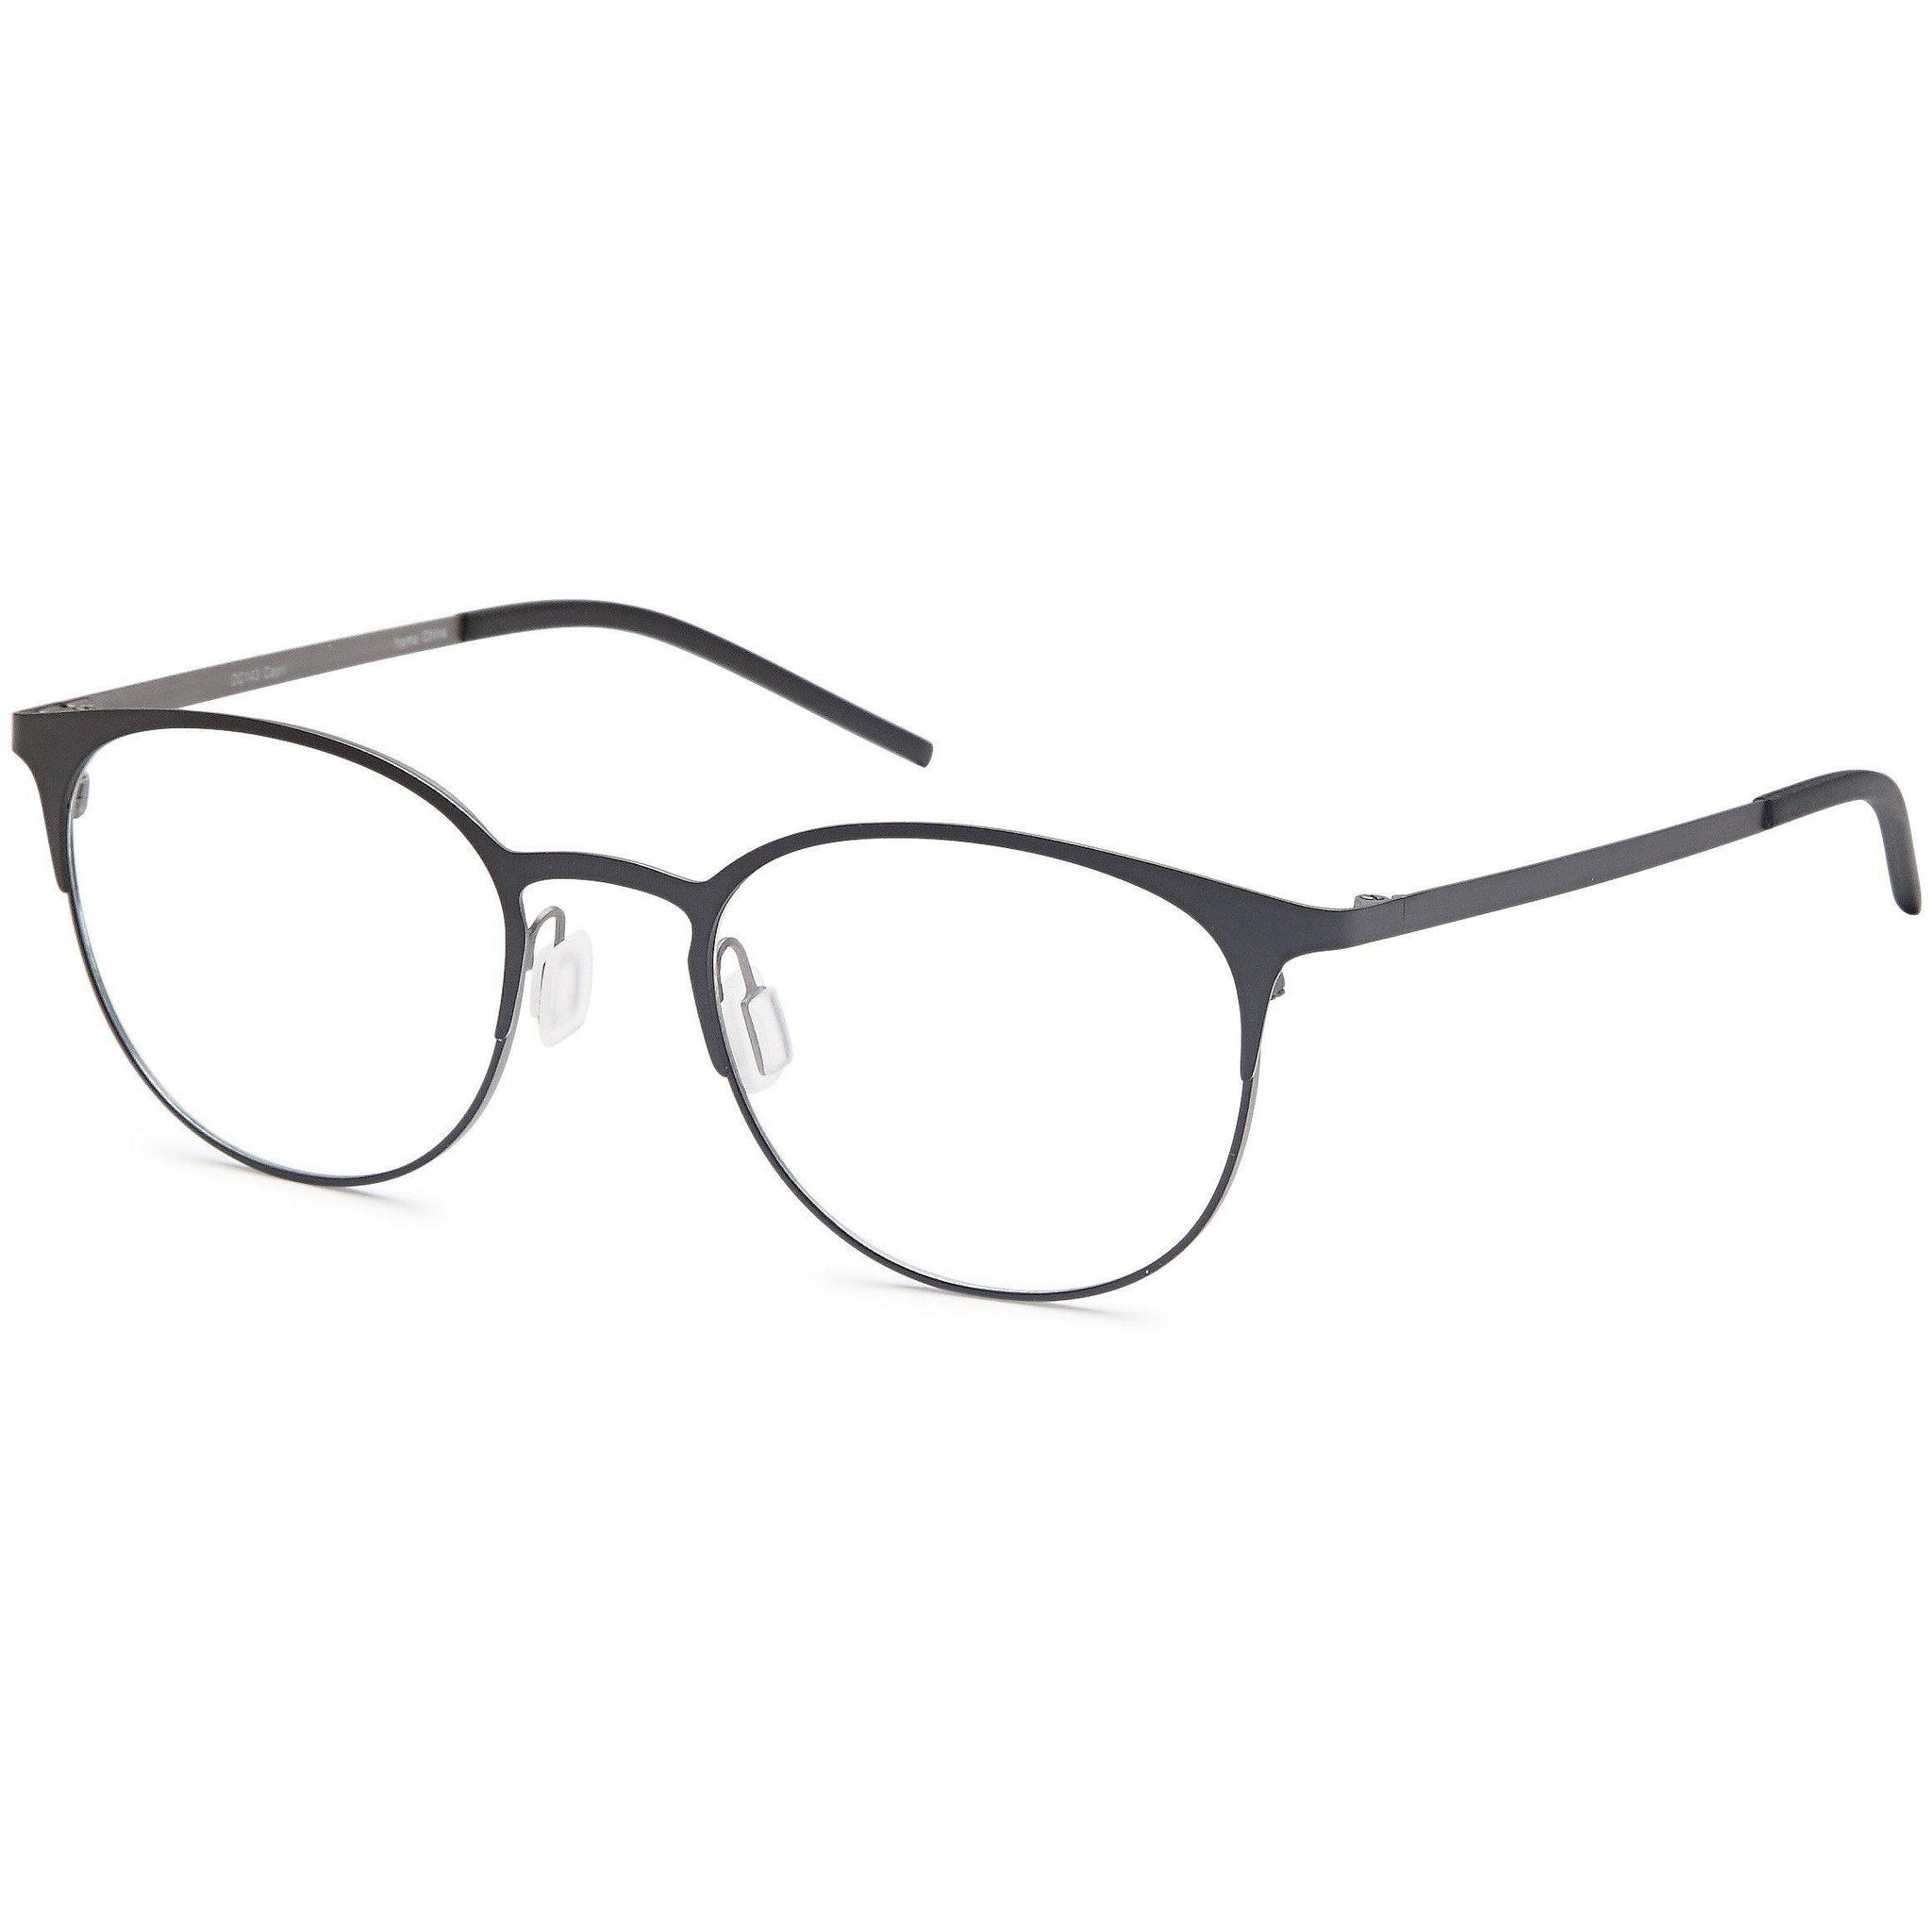 Di Caprio Prescription Glasses DC 143 Eyeglasses Frame - timetoshade